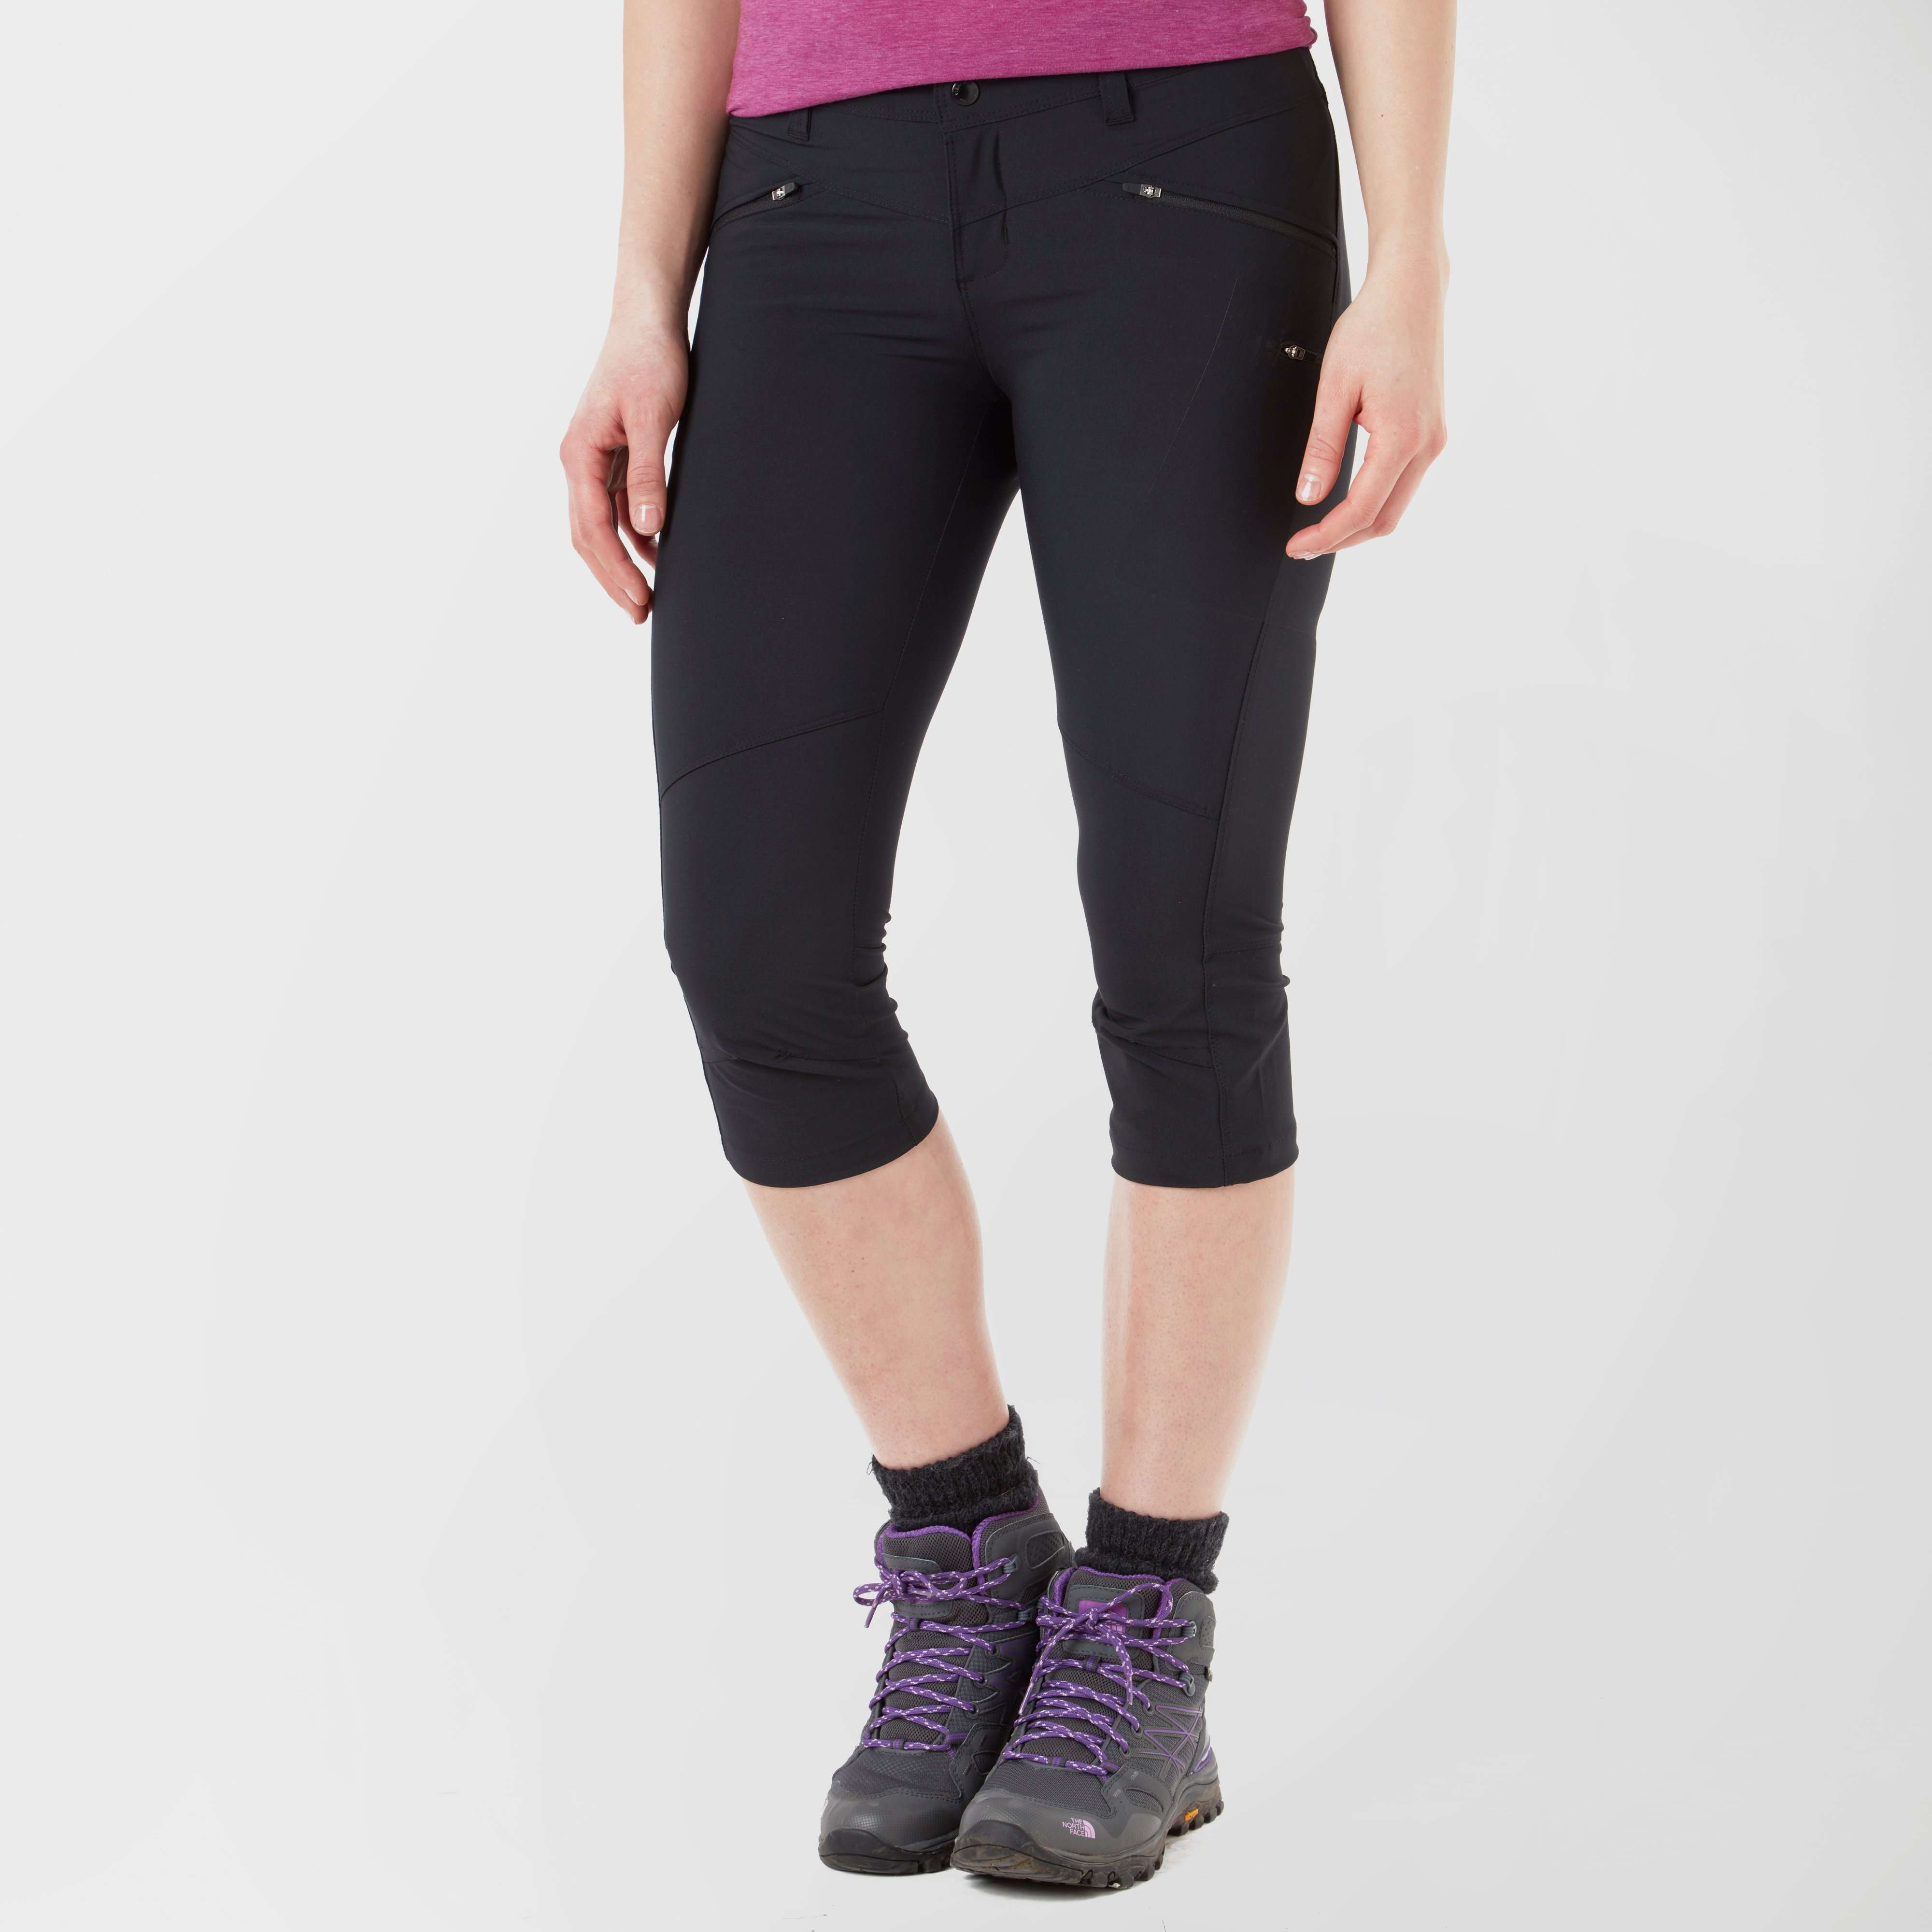 Buy Cheap Wholesale Price Columbia Women's Peak to Point Knee Trousers 2018 New Sale Online For Sale Footlocker Cheap Sale 2018 Newest sk5OecONmu